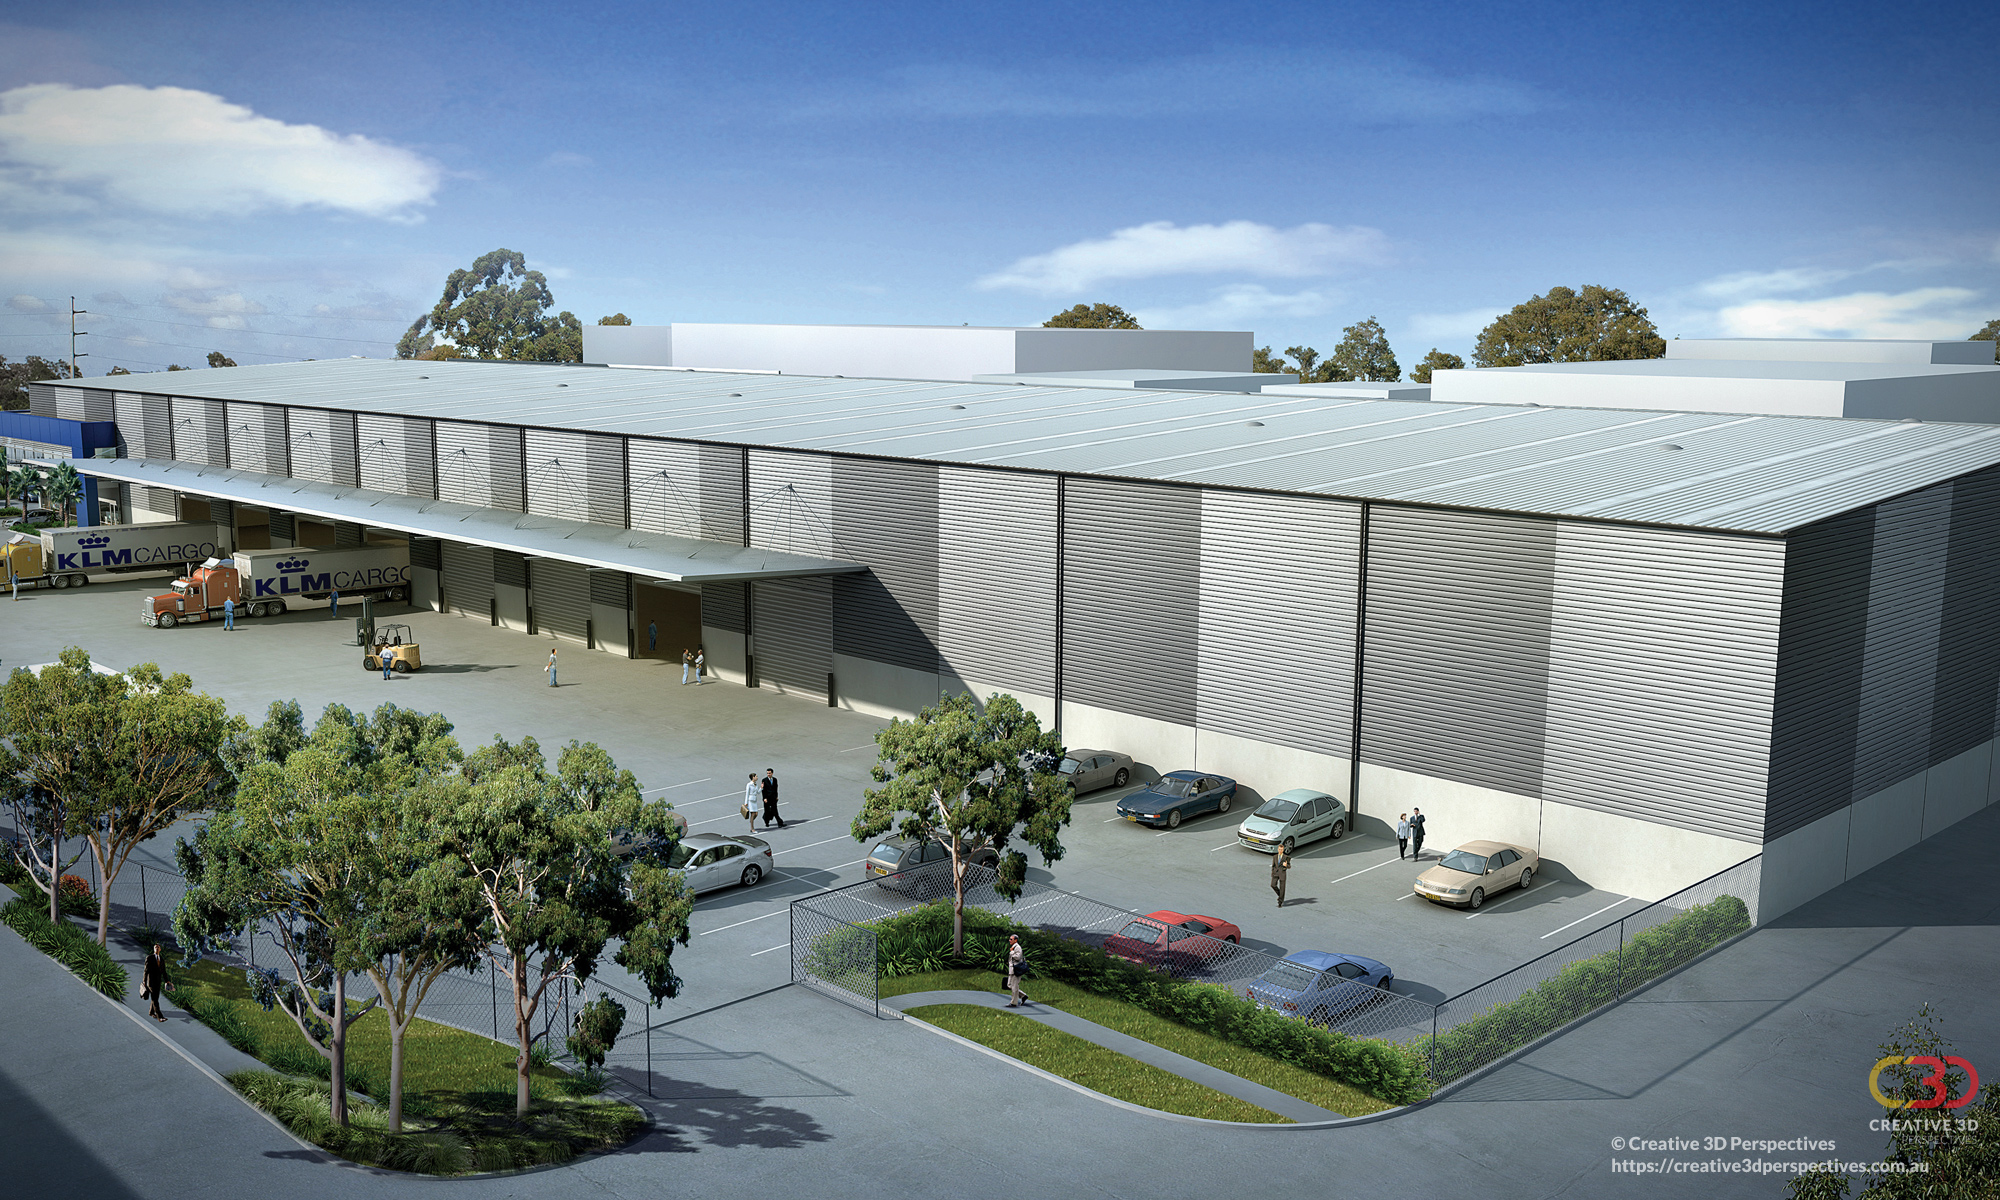 2 Glenndenning NSW Warehouse, exterior loading area, oblique aerial view of façade with office mezzanine, Creative 3D Perspective